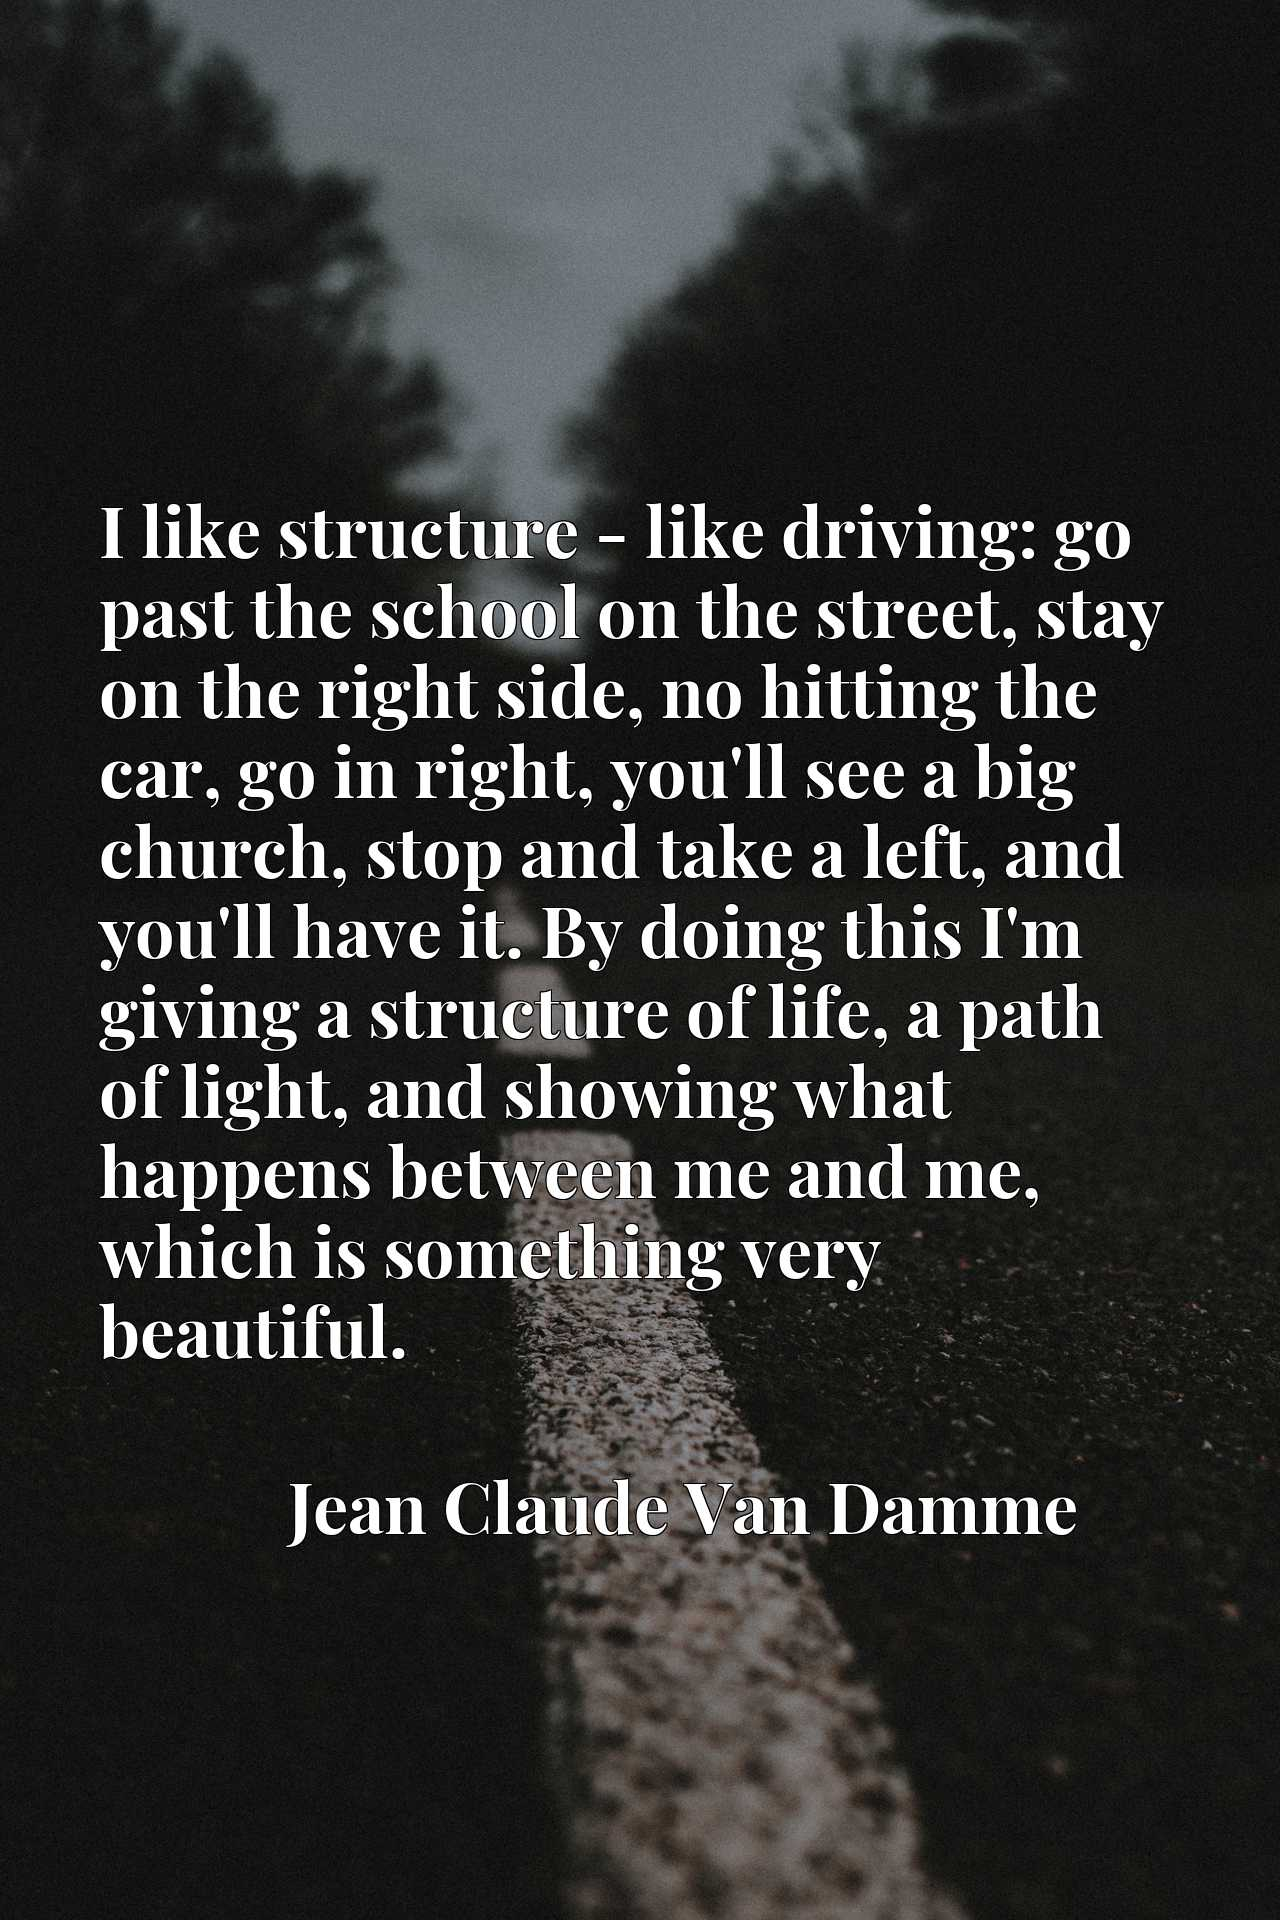 I like structure - like driving: go past the school on the street, stay on the right side, no hitting the car, go in right, you'll see a big church, stop and take a left, and you'll have it. By doing this I'm giving a structure of life, a path of light, and showing what happens between me and me, which is something very beautiful.